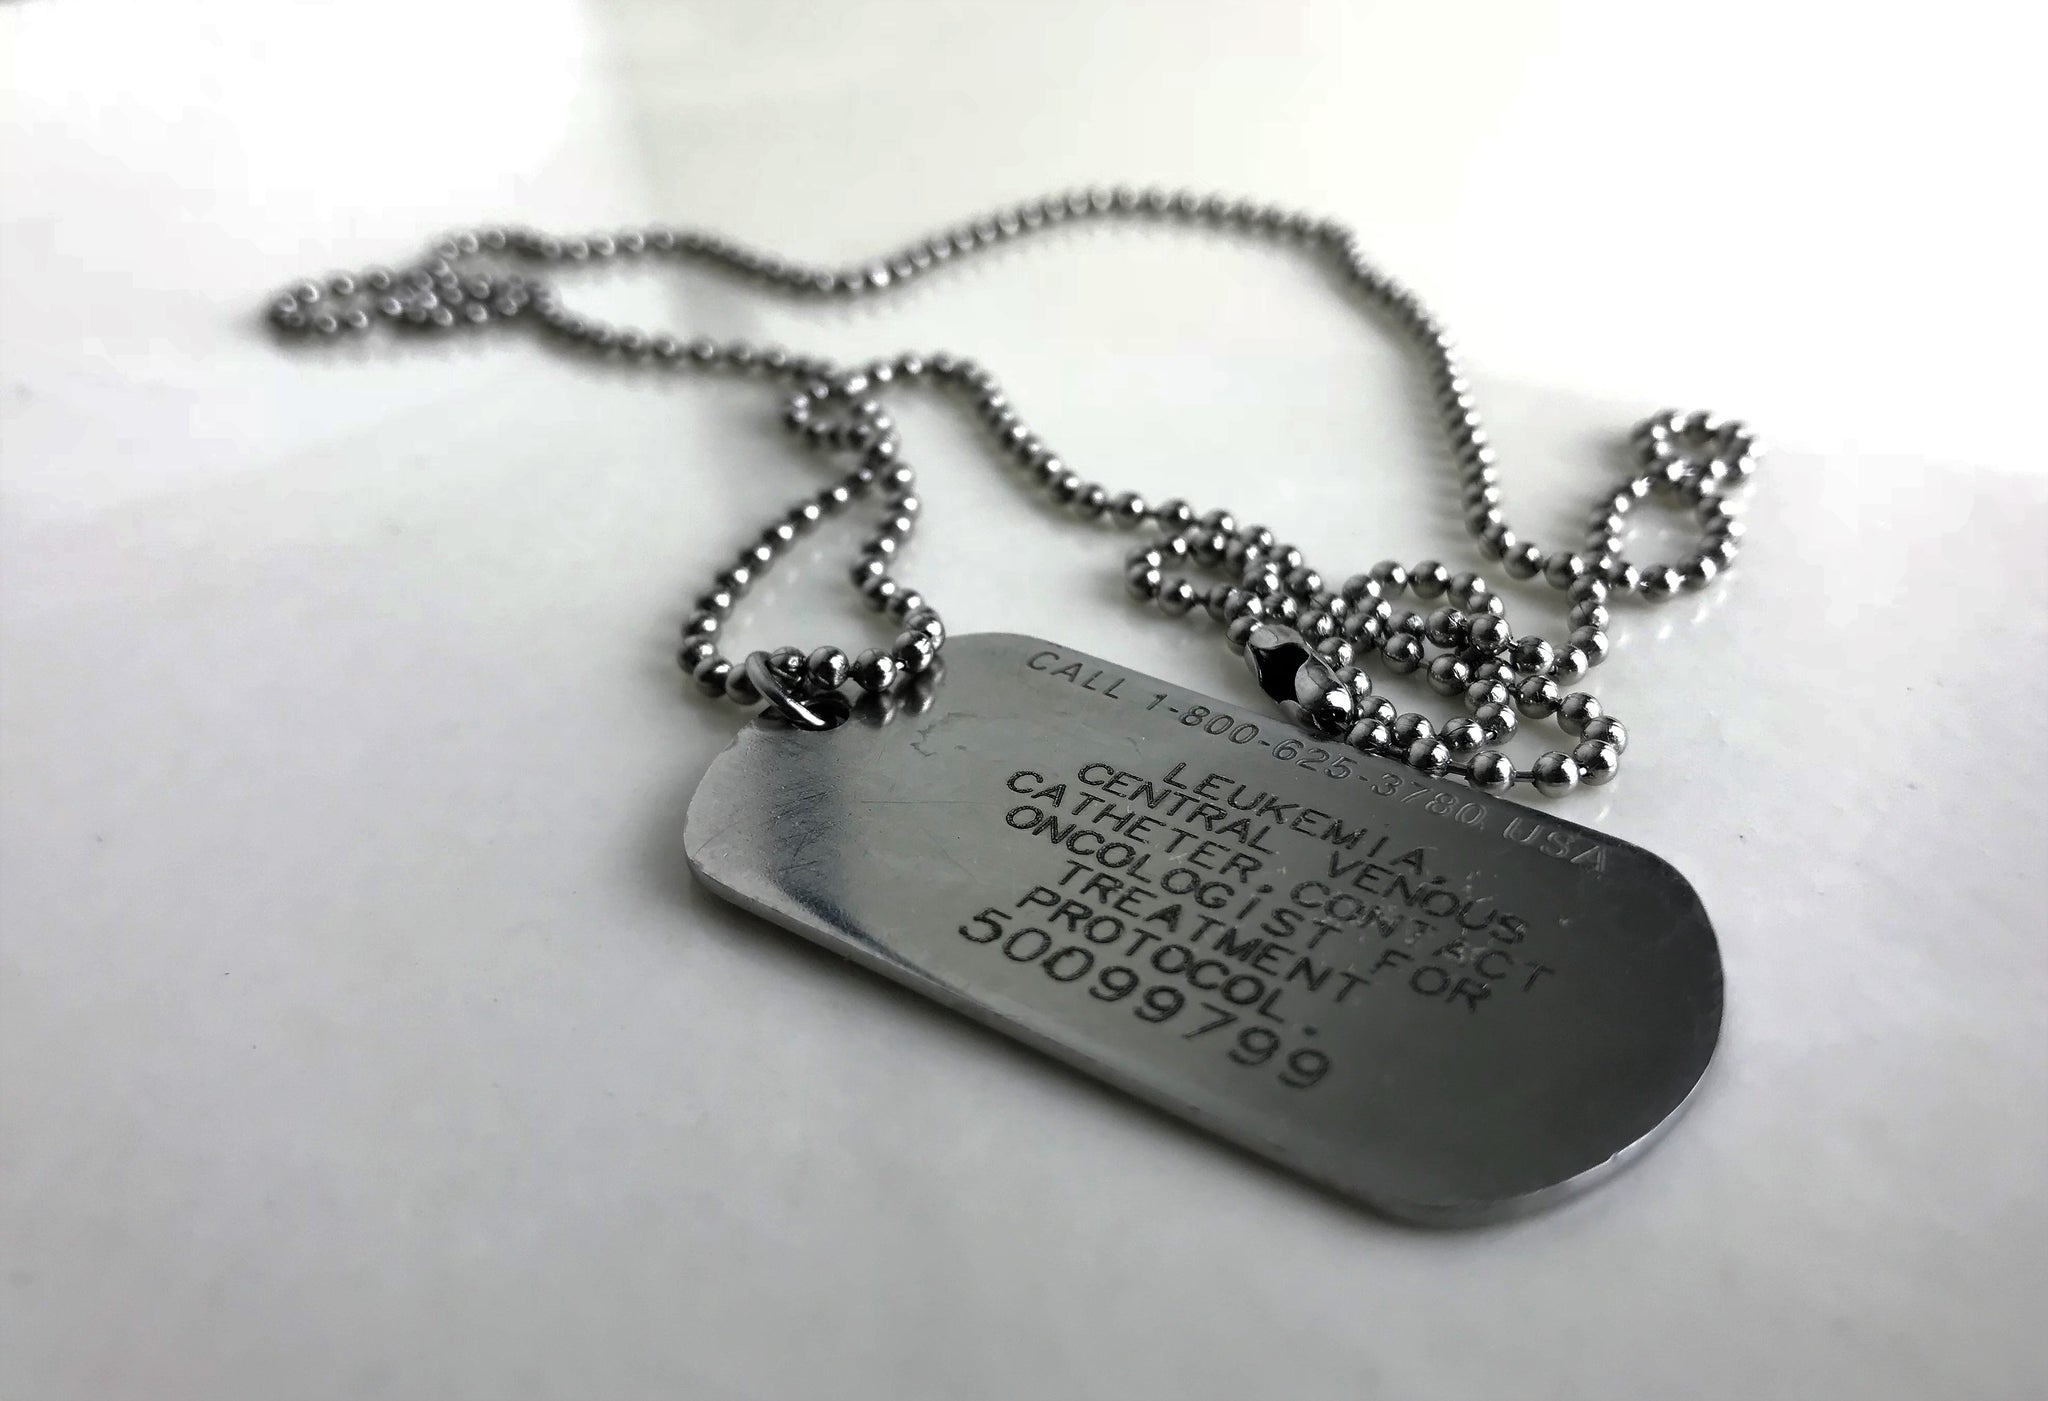 The Cancer Patient's Arsenal: Medical ID Tag